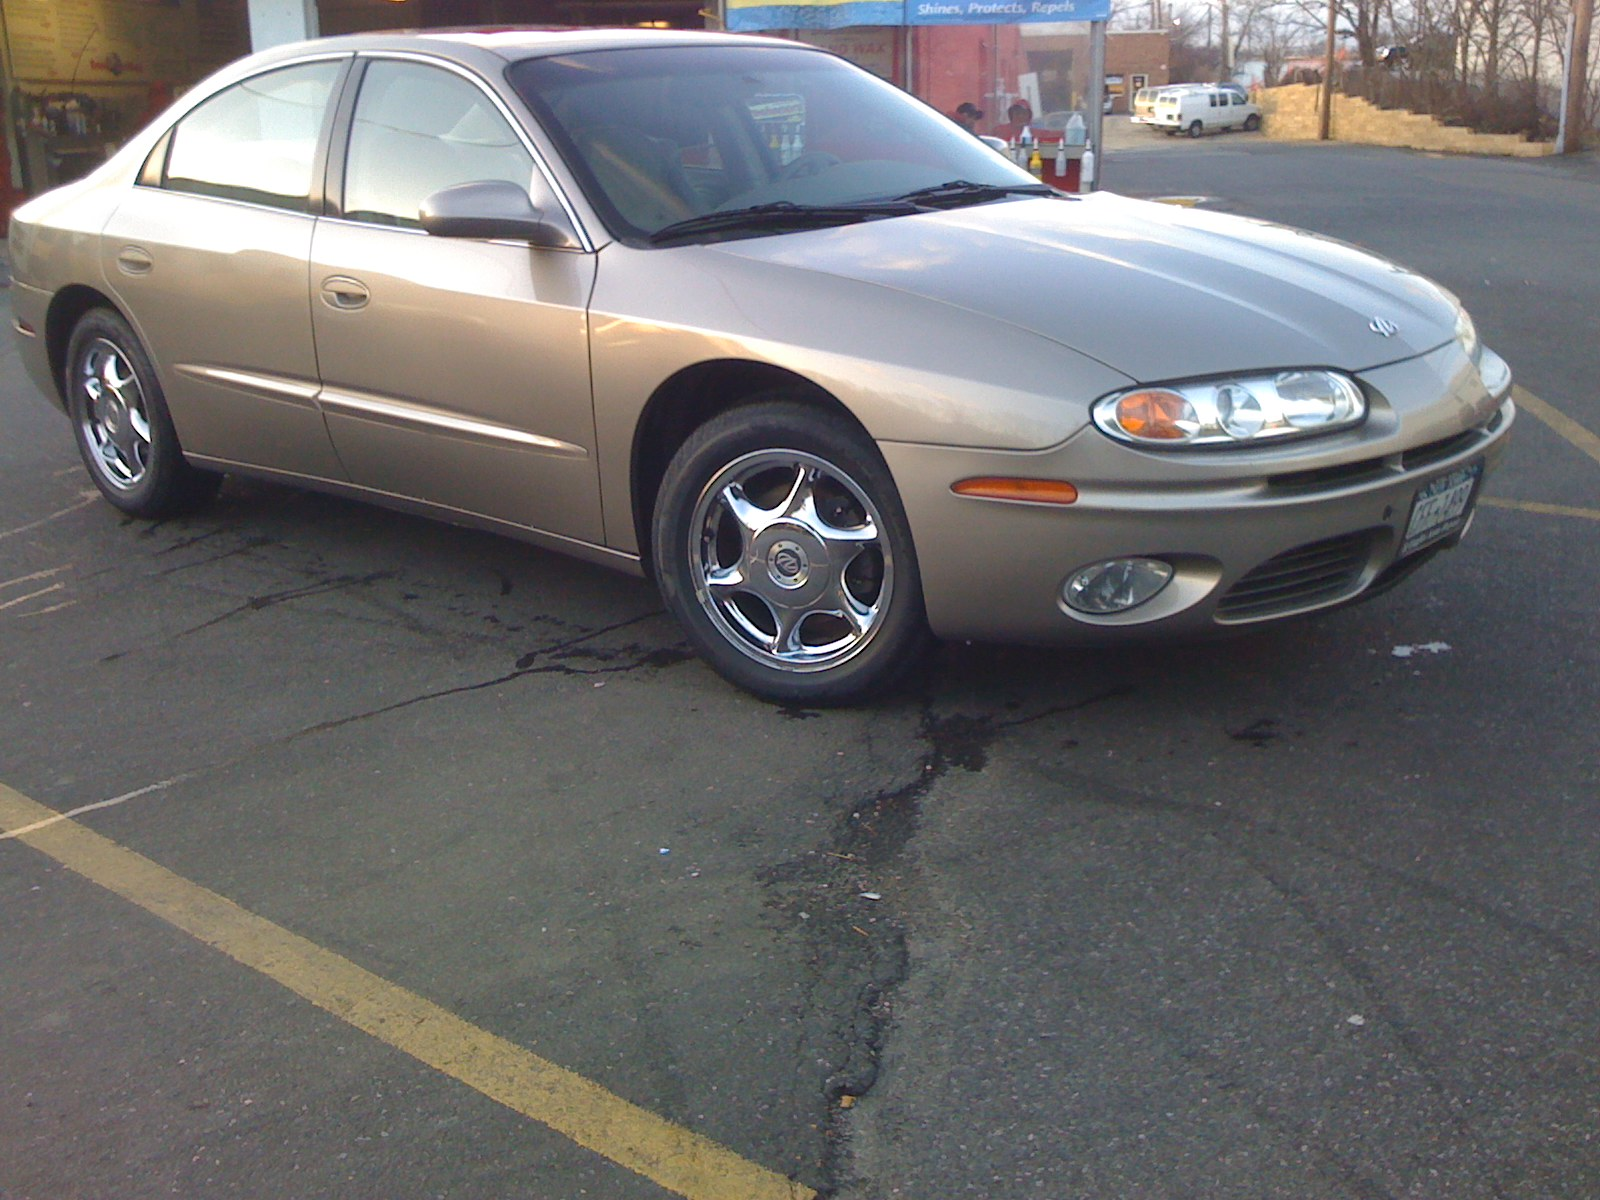 2003 Oldsmobile Aurora 4 Dr 4.0 Sedan picture